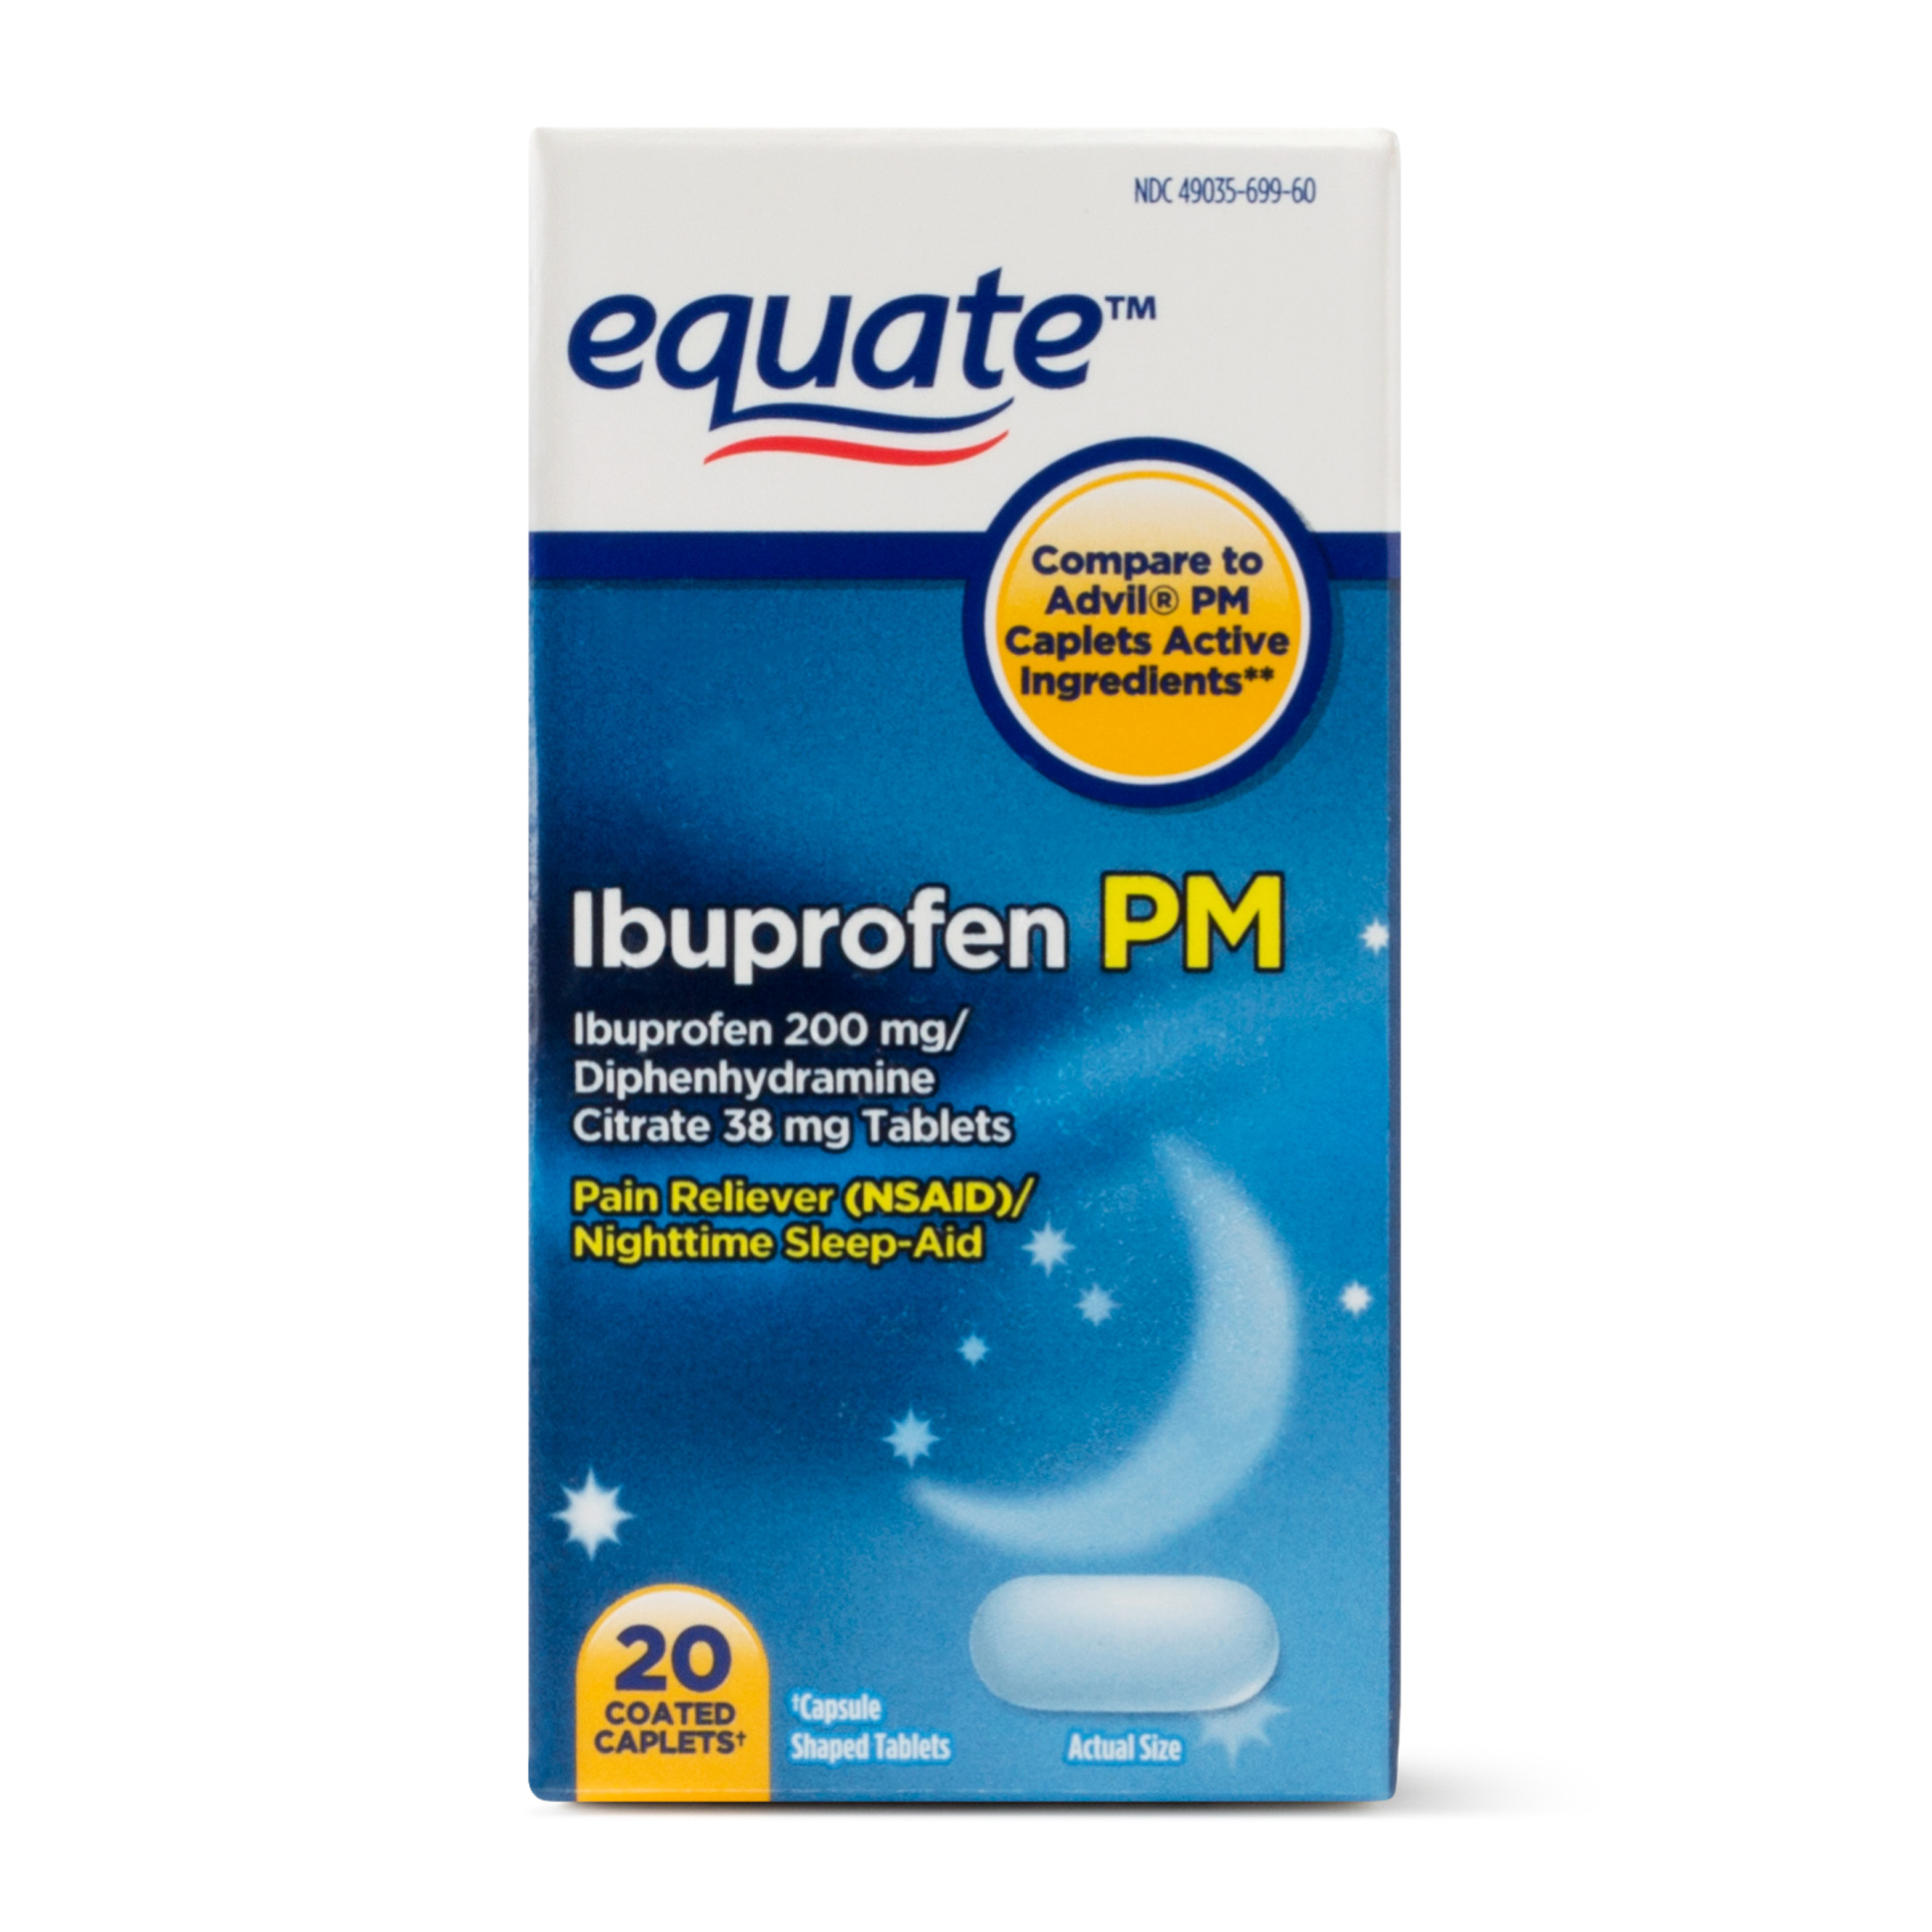 Equate Ibuprofen PM, 200 mg, 20 Coated Caplets